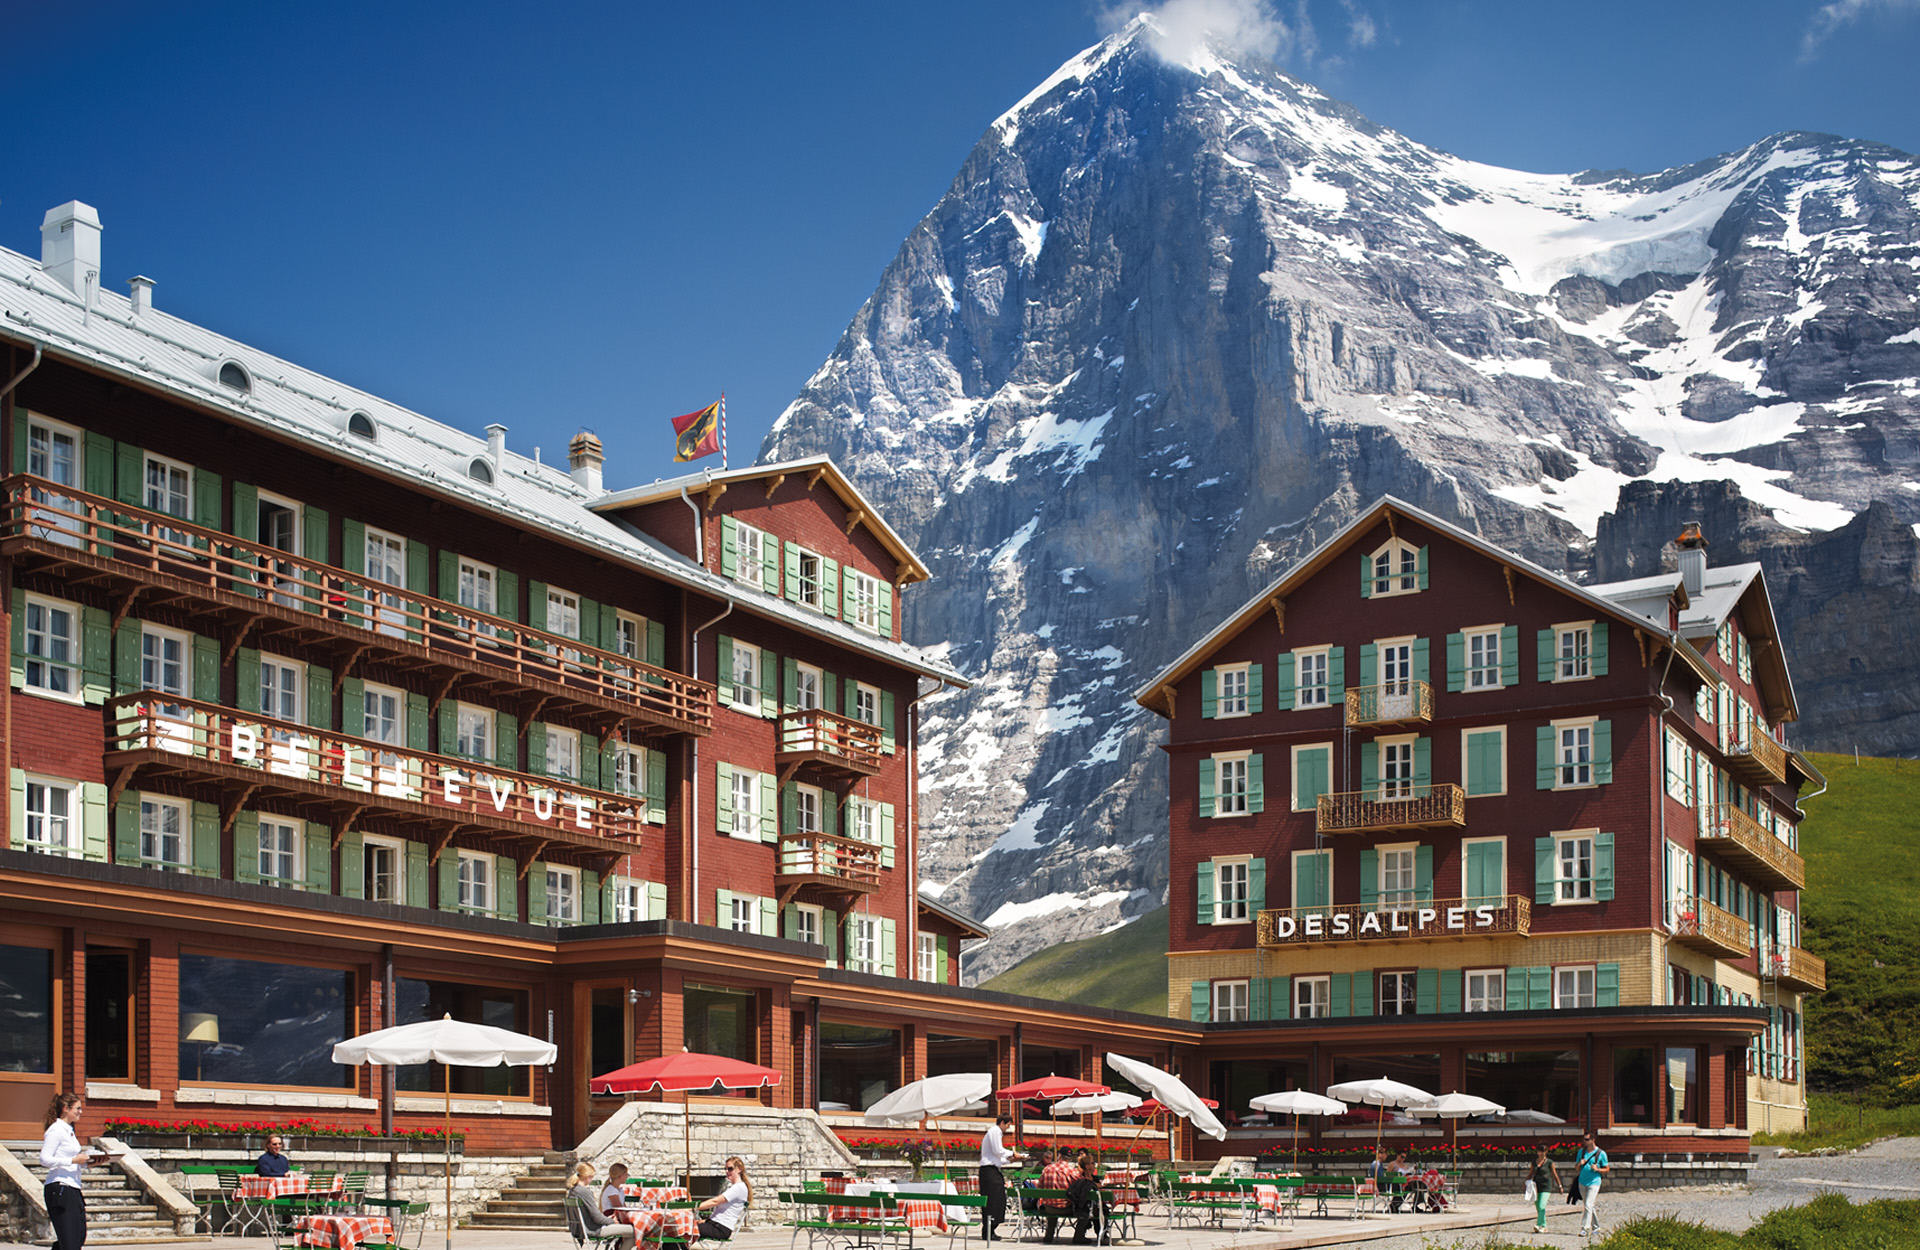 The historic Hotel Bellevue des Alpes in front of the famous Eiger north face